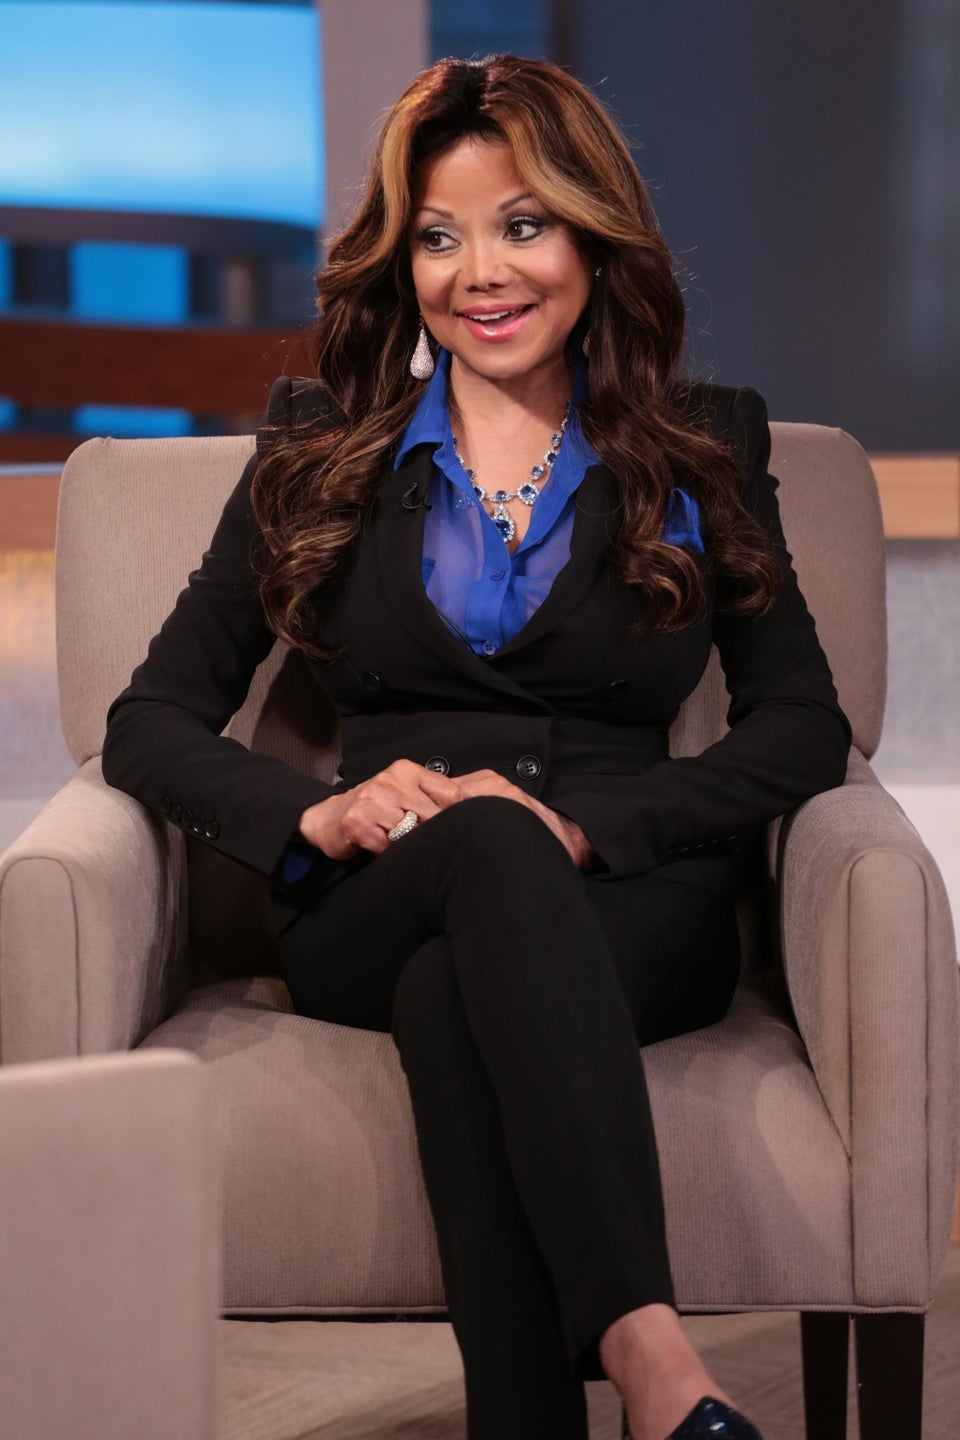 EXCLUSIVE: La Toya Jackson Talks New Reality Show and Her Dream Guy